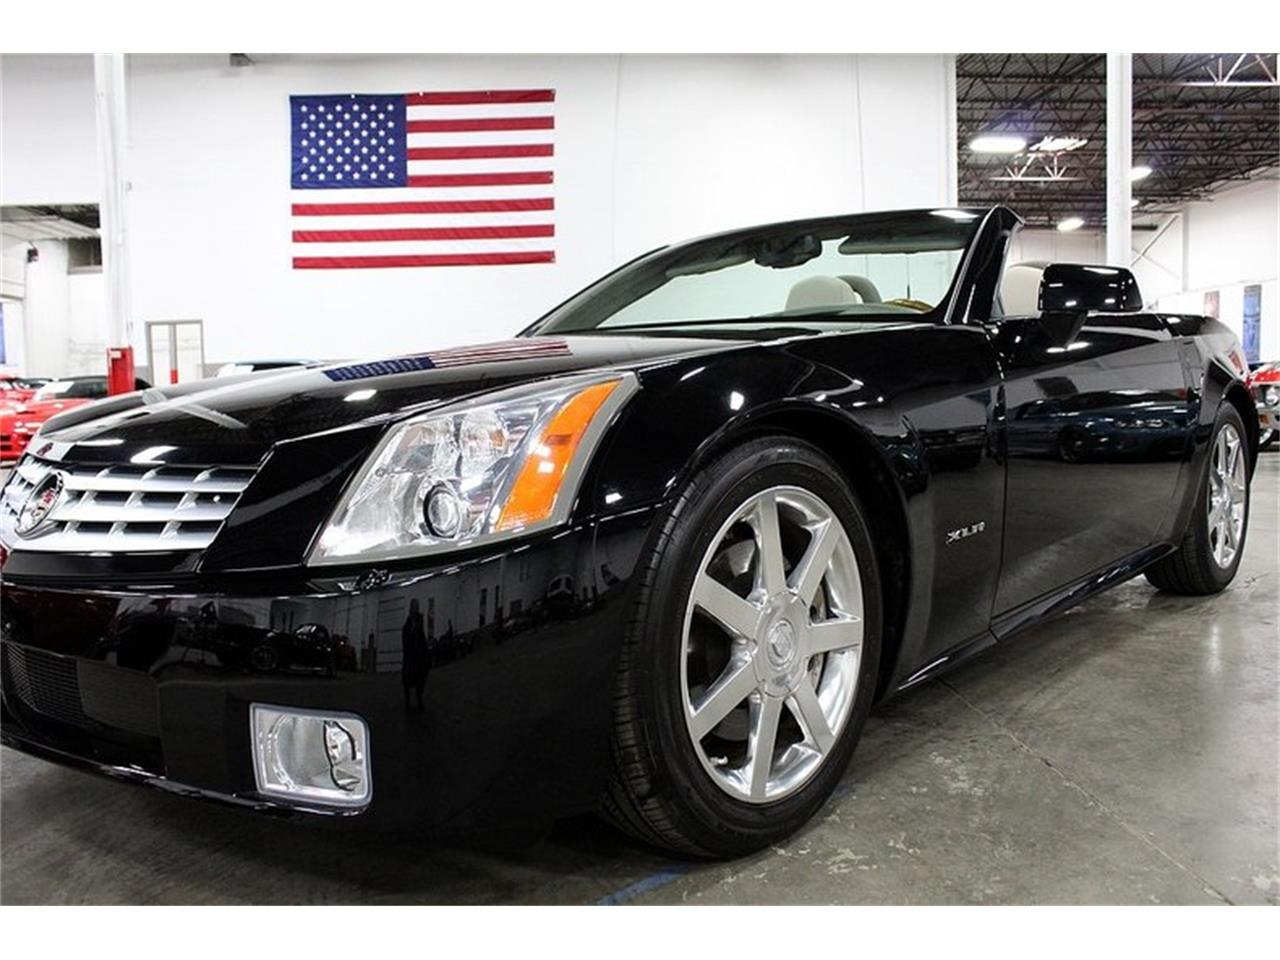 Large Picture of 2004 Cadillac XLR located in Kentwood Michigan - $28,900.00 - PUP2